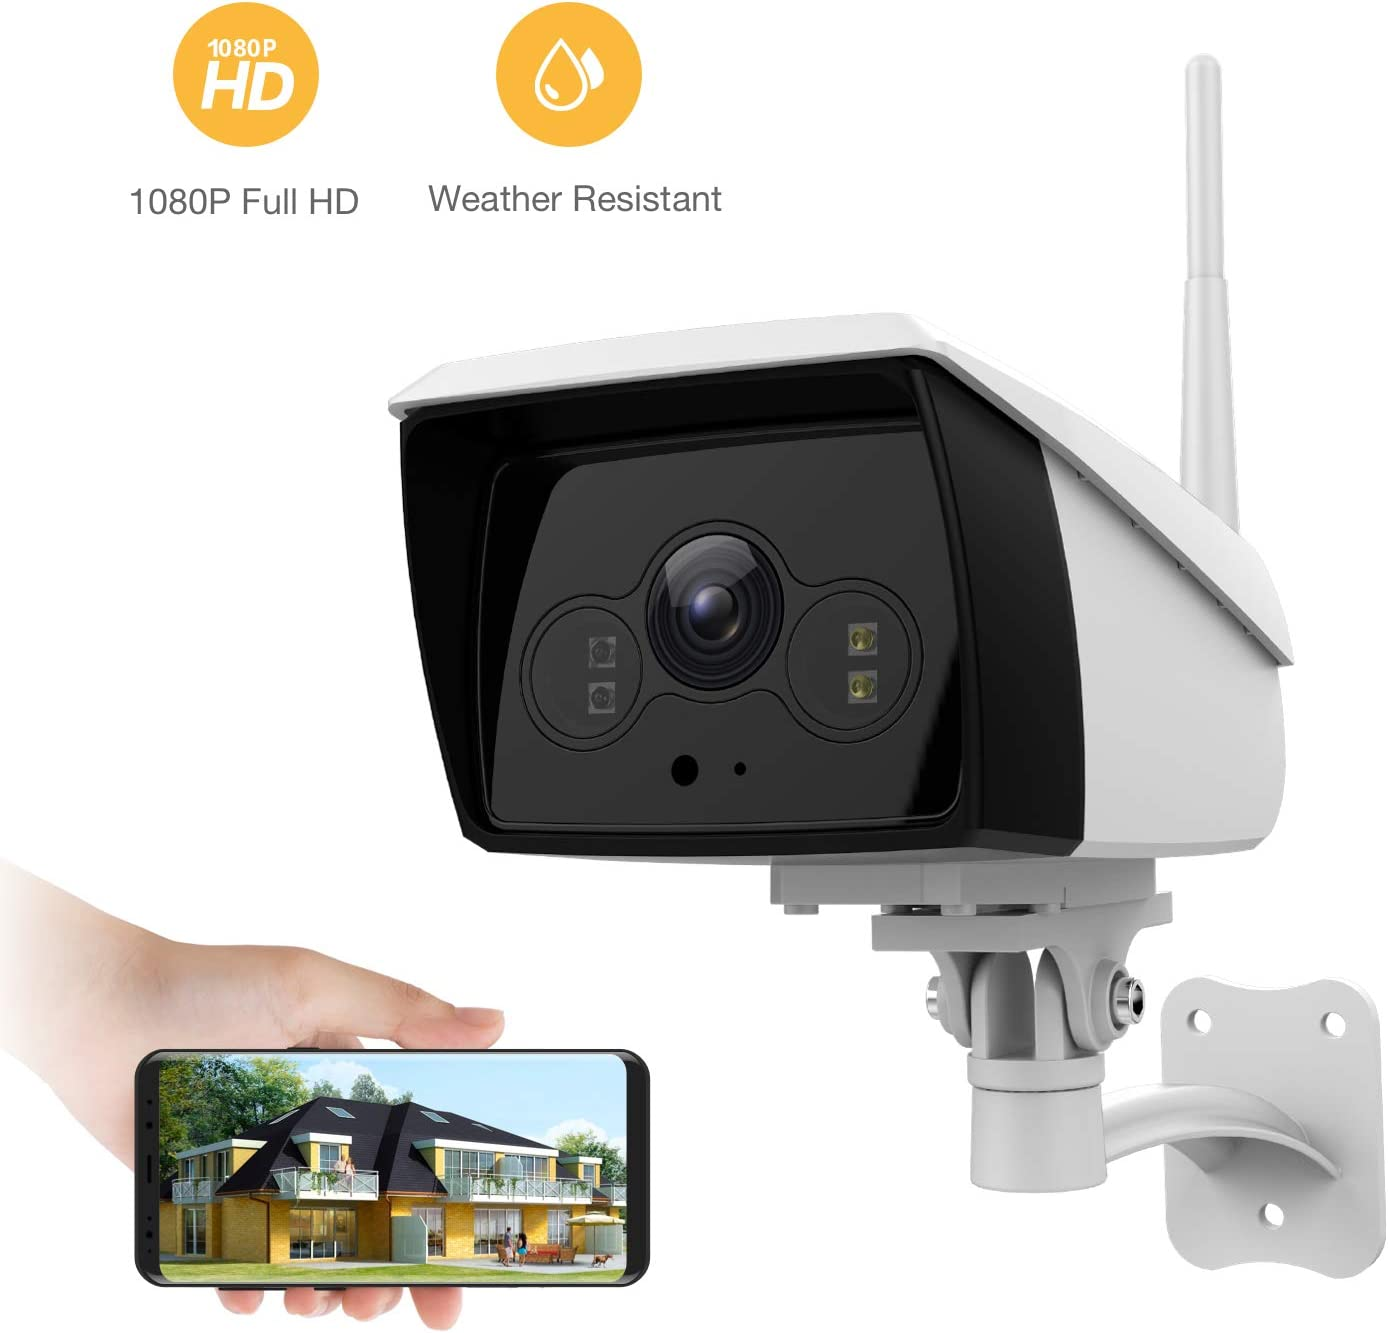 famisafe Wireless Outdoor Camera, IP Camera HD 2MP Floodlight 2.4G Wi-Fi with 2-Way Audio, Motion Detection, Night Vision, Remote Monitor for Baby Pet Elder, Work with Alexa Android iOS